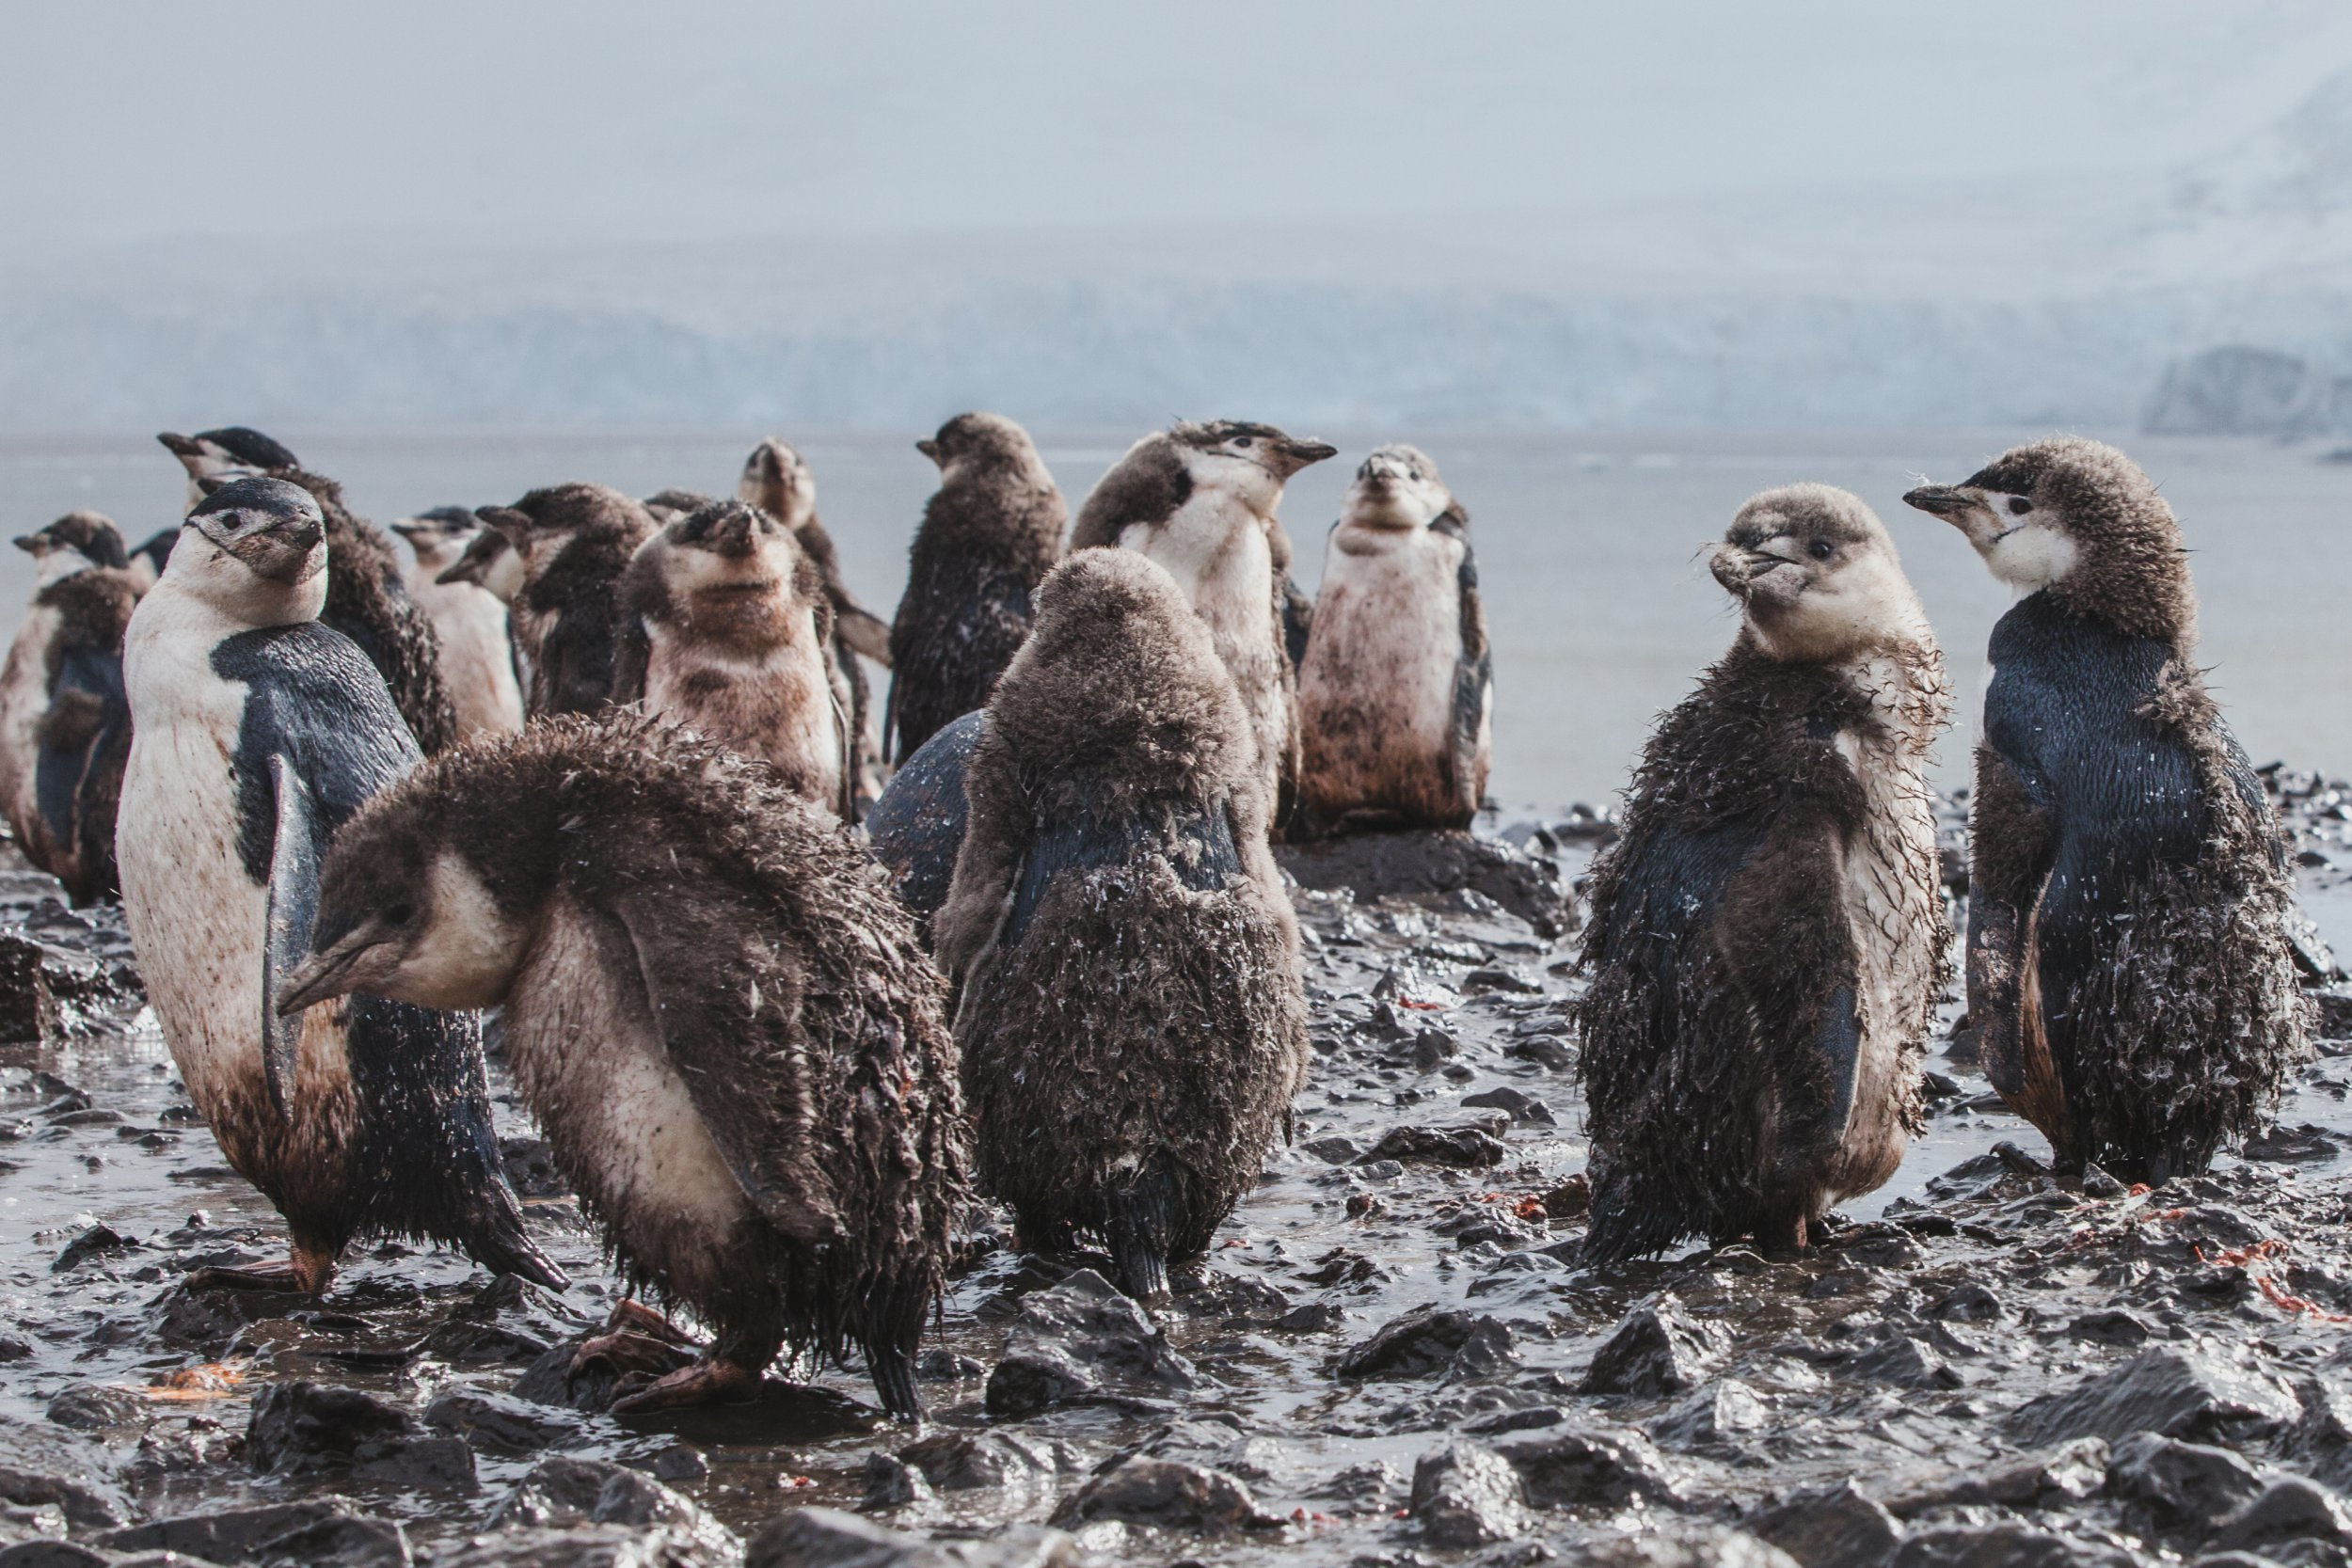 Penguin chicks in Antarctica are freezing to death because of rain